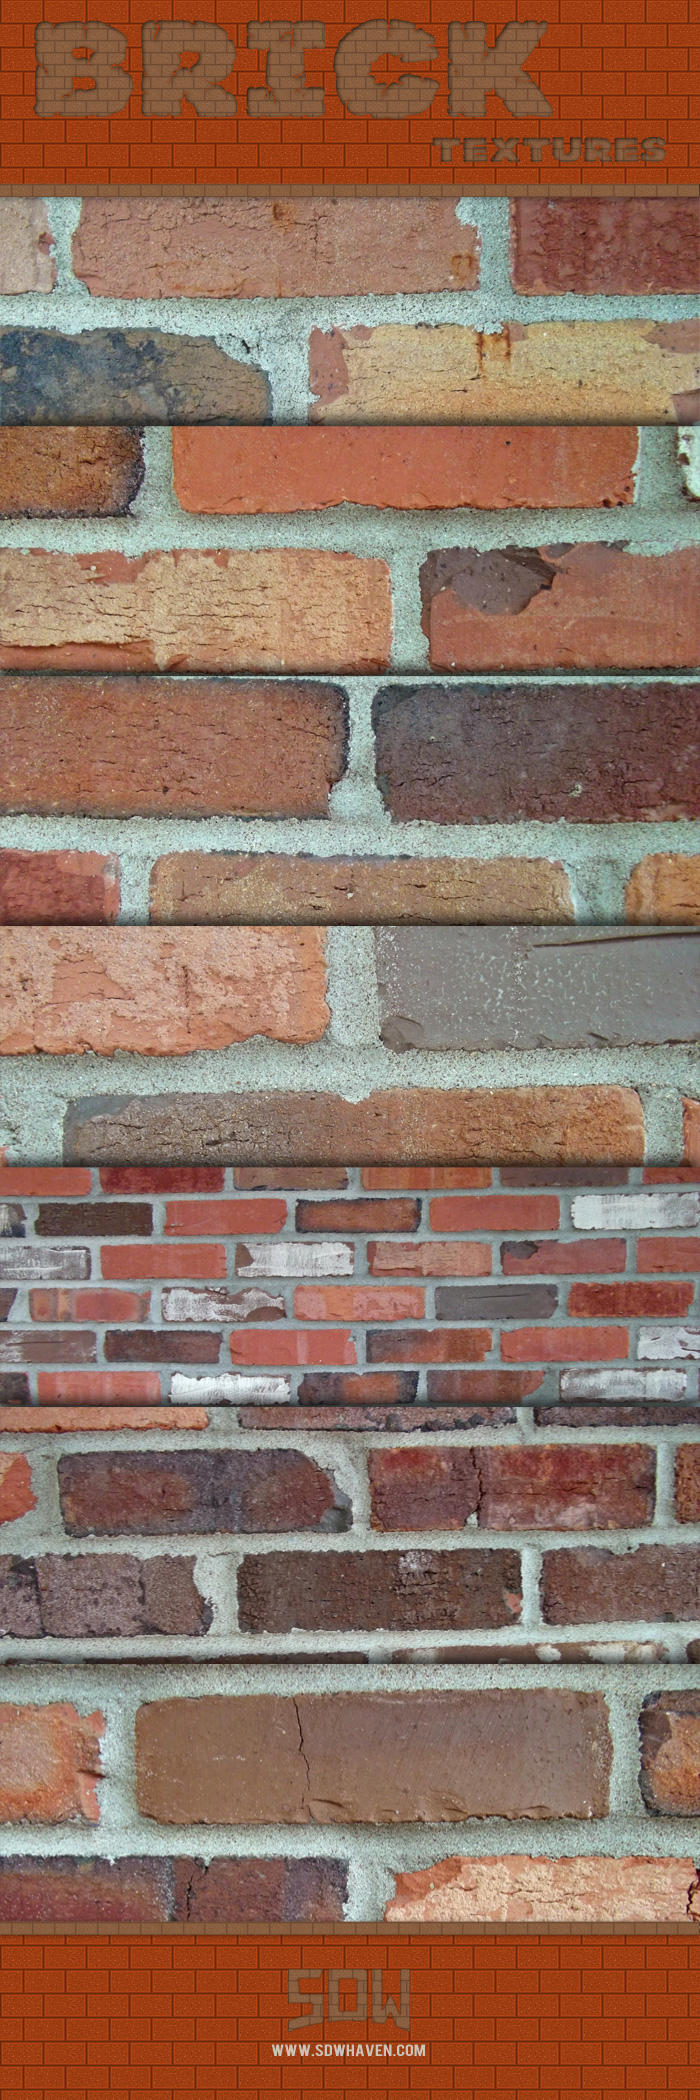 7 Free High Res Brick Textures by sdwhaven